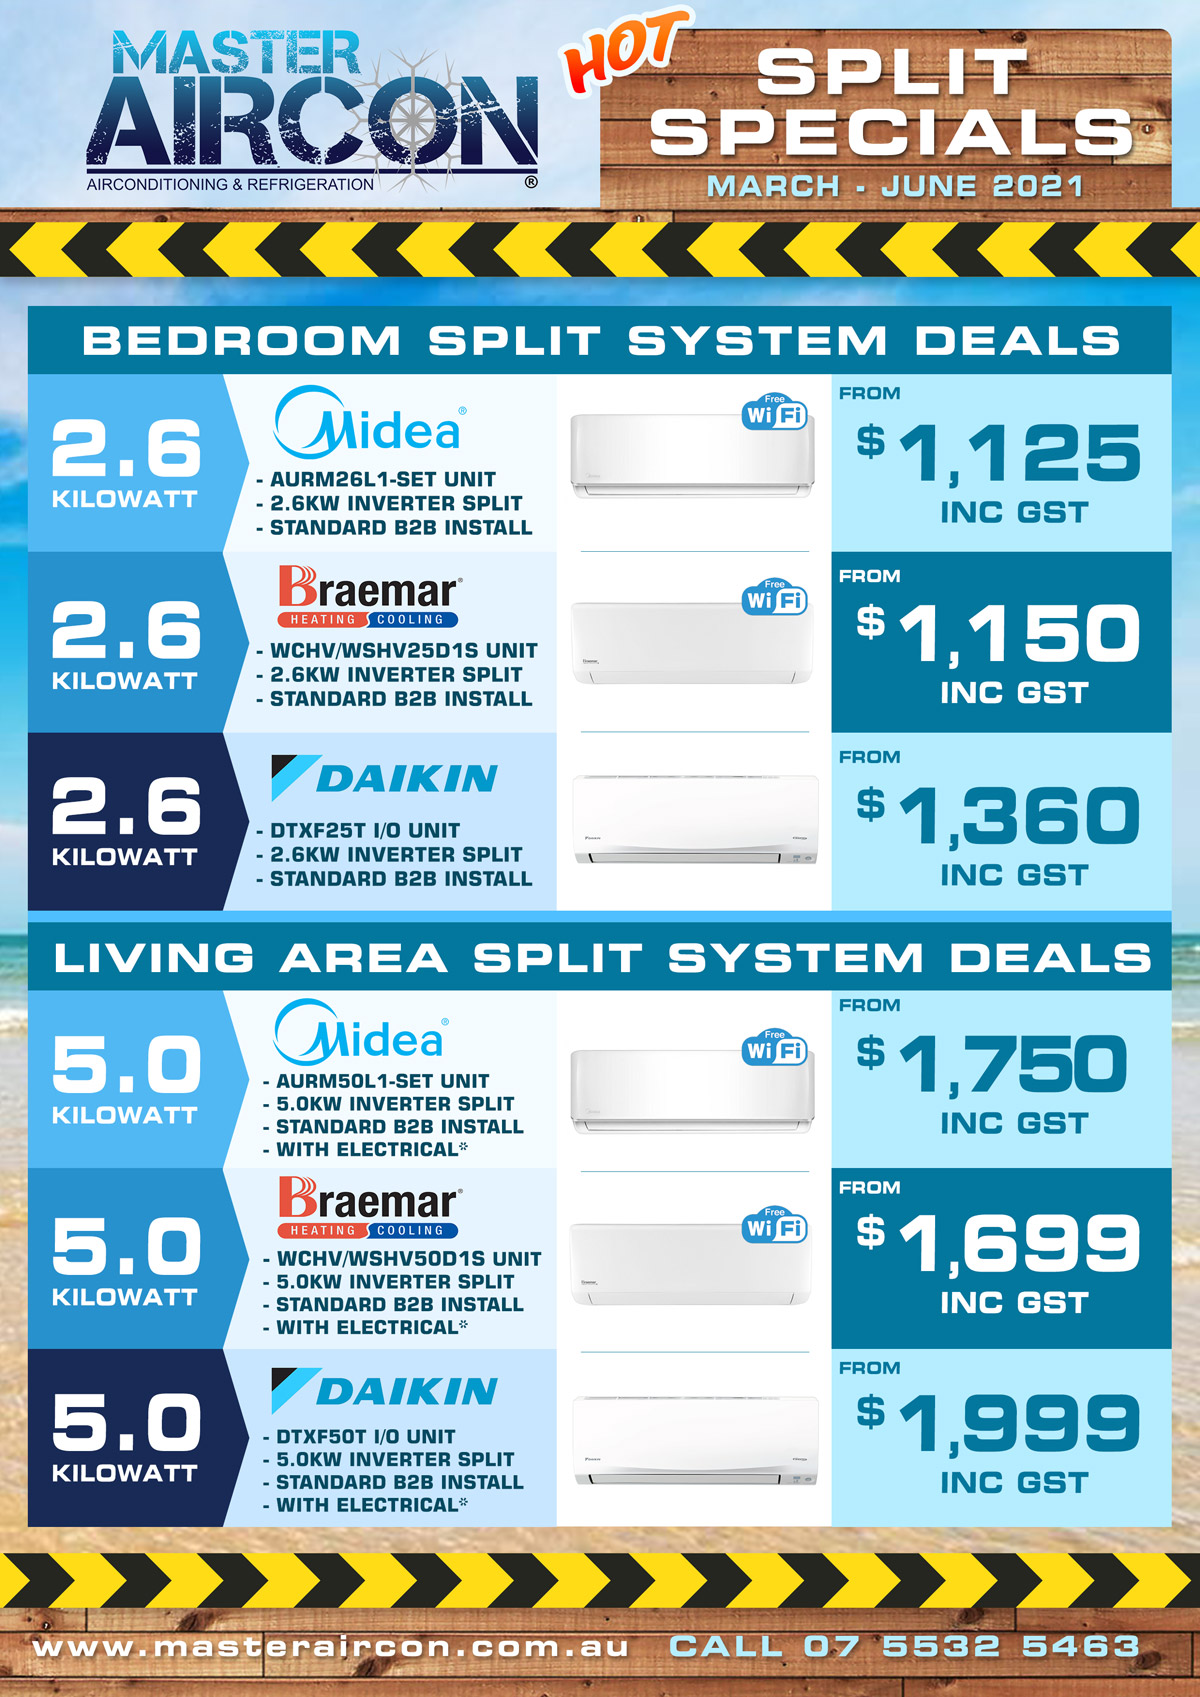 https://www.masteraircon.com.au/wp-content/uploads/2021/03/MAC_2021_specials_splits_v1_feb1200.jpg